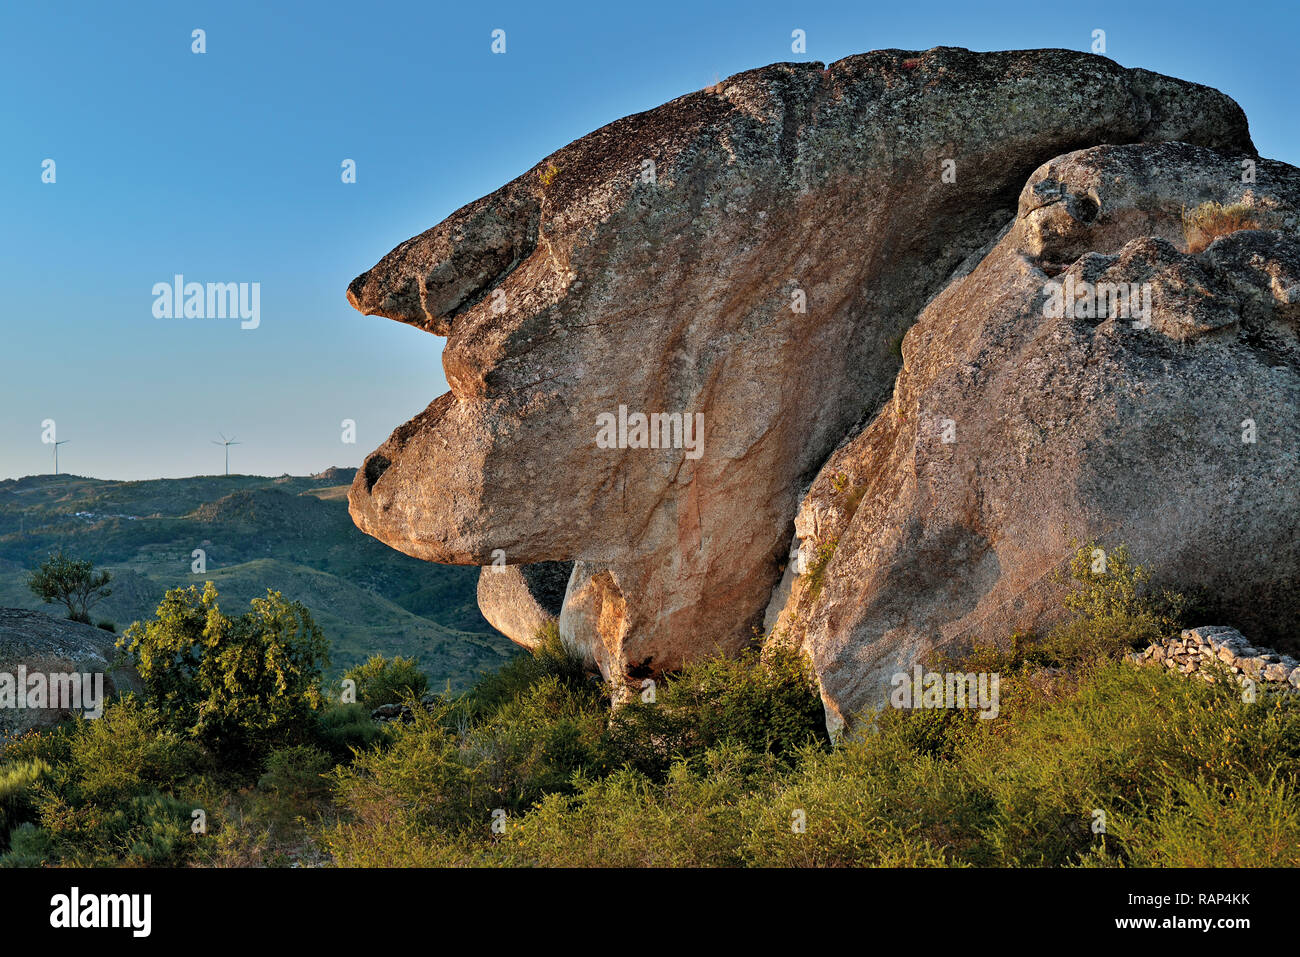 Enormous nature sculptured granite rock showing the silhouette of an old woman - Stock Image